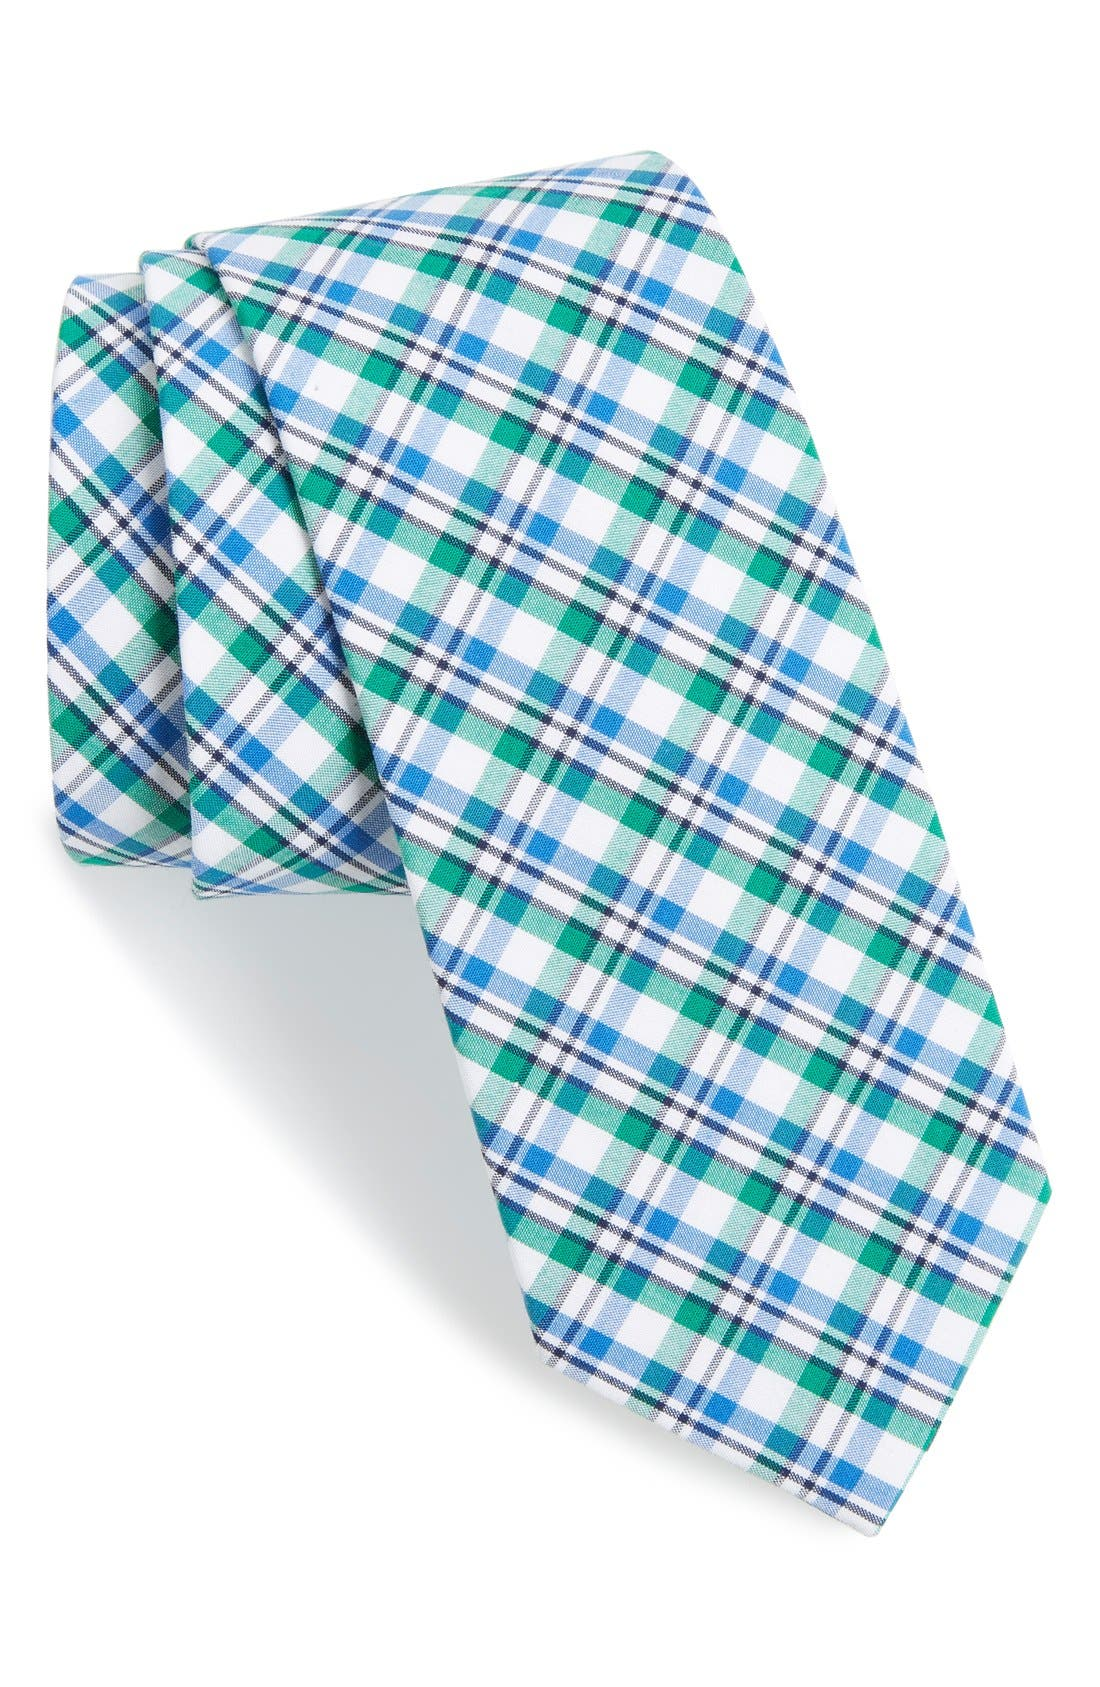 'Boomer' Plaid Cotton Tie,                         Main,                         color,